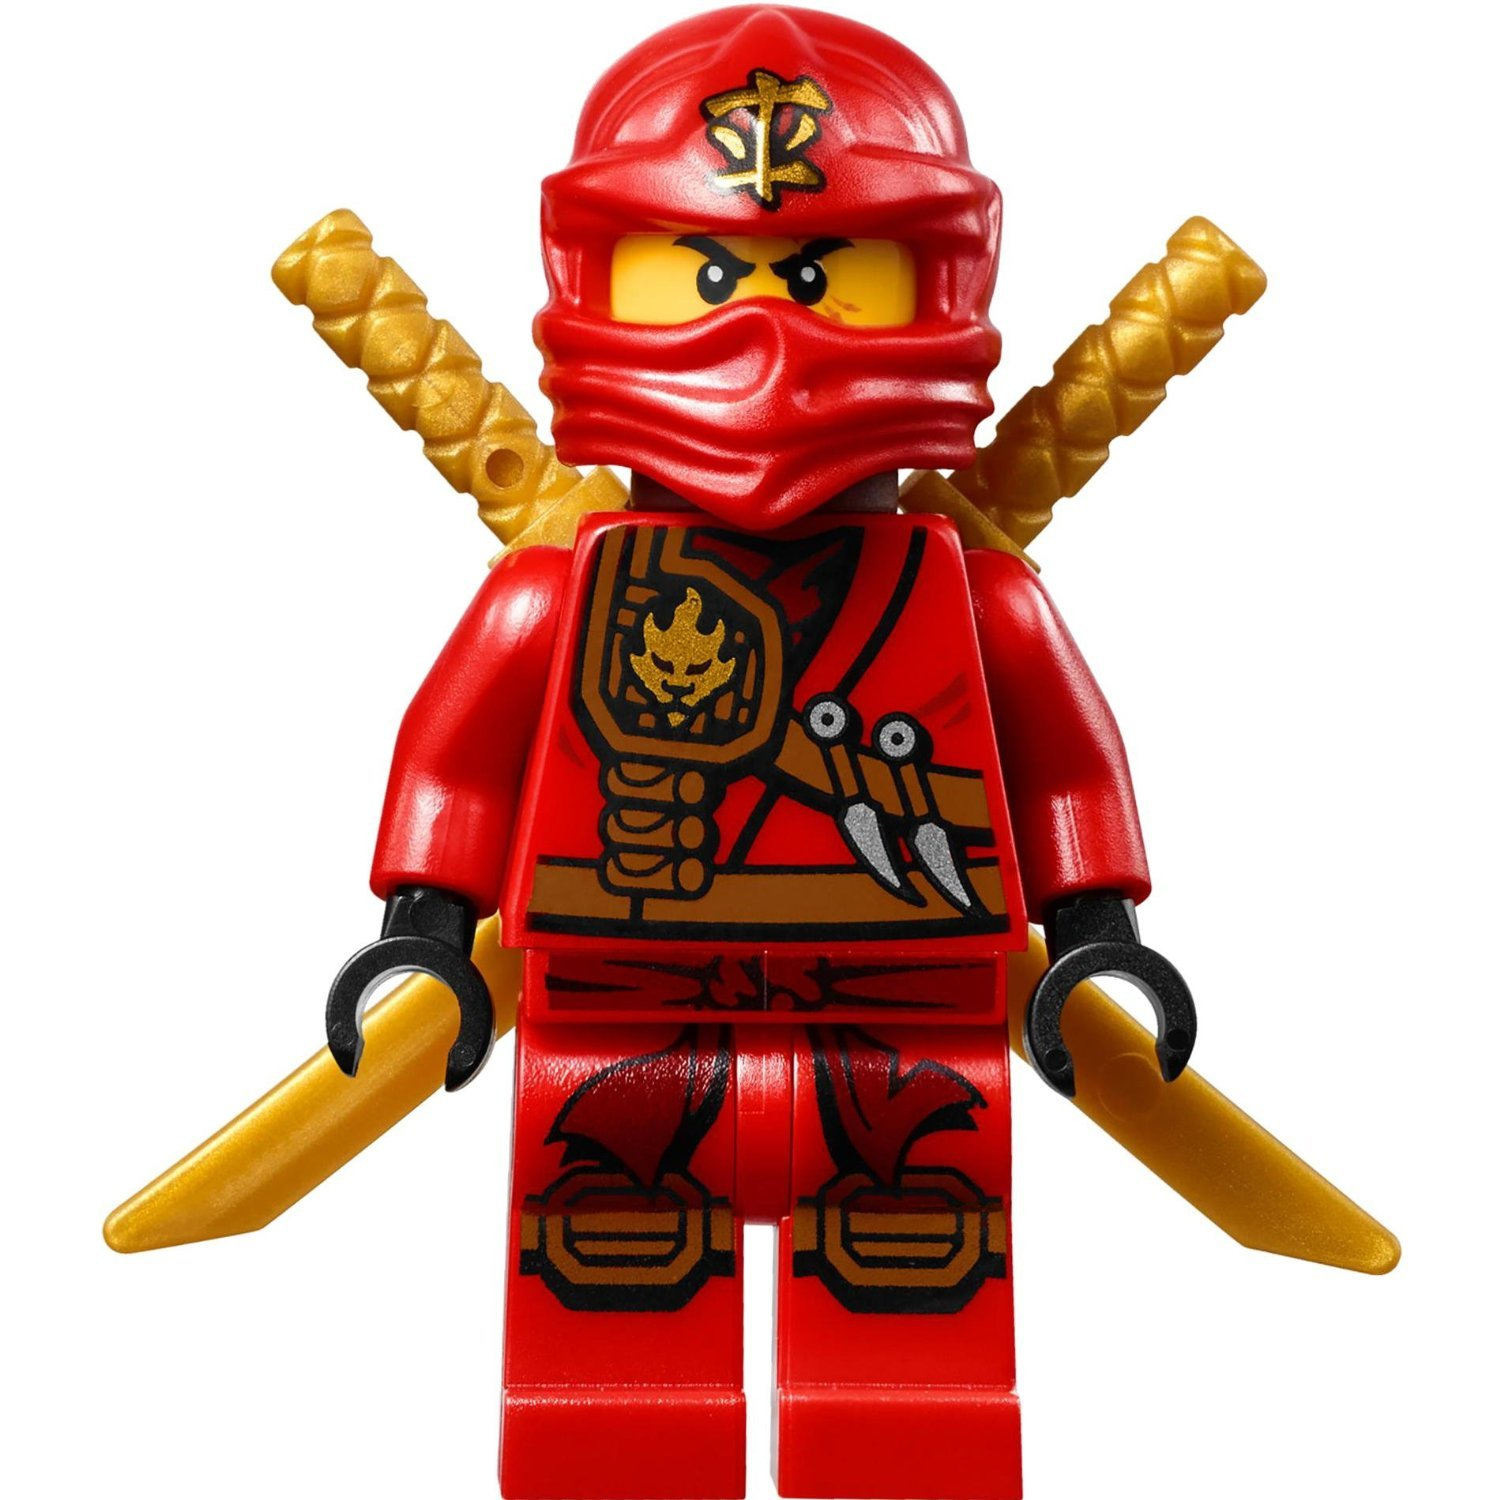 LEGO Ninjago Minifigure - Kai Zukin Robe (Red Ninja) with Dual Gold Swords (70745)